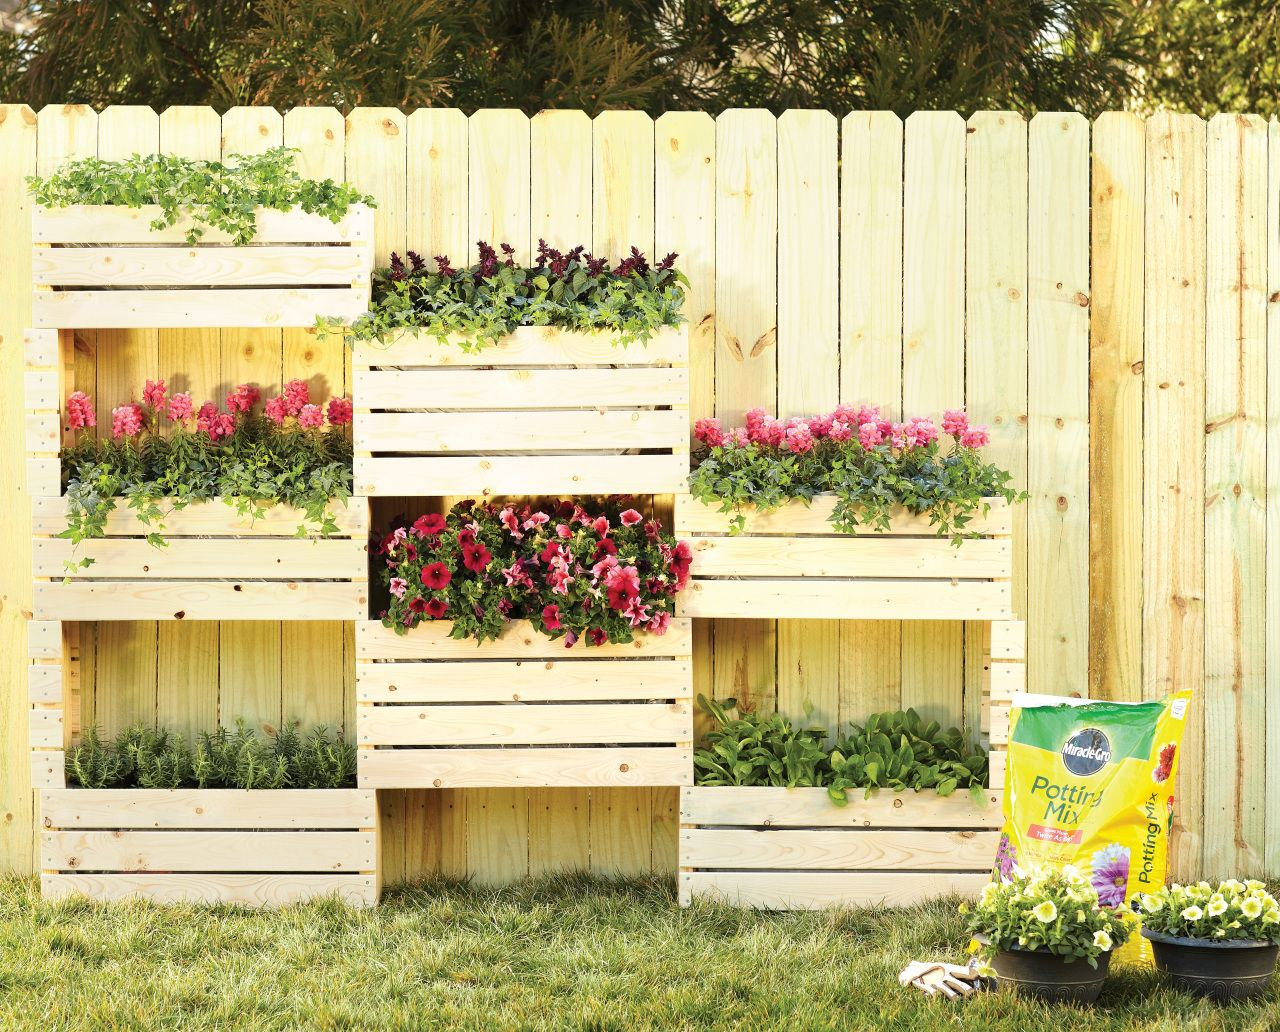 Build a Wall of Flowers for Your Backyard | Wooden crates, Garden ...